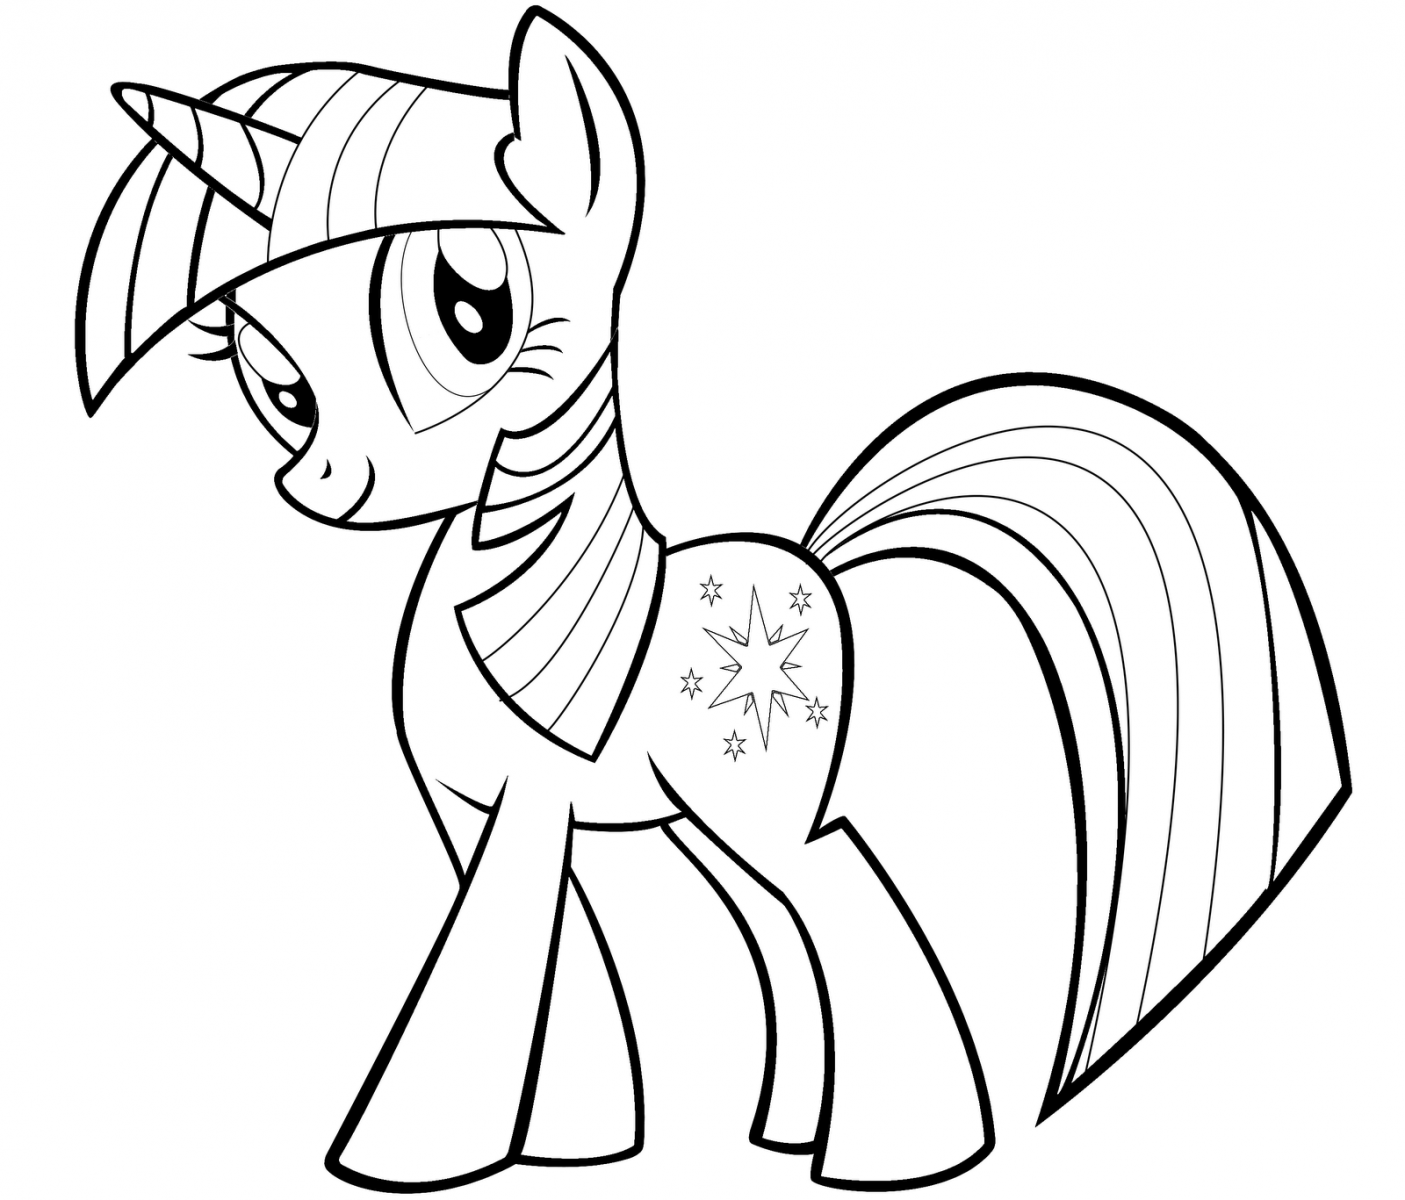 Chewlian Venus Mc Flytrap together with Skylanders Dragons Coloring Pages together with Grey Bathroom Floor Tile Texture besides Printables For Toddlers My Little Pony Friendship Is Magic Coloring Pages Online Free 64262 further My Little Pony Equestria Girls Coloring. on wolf twilight sparkle